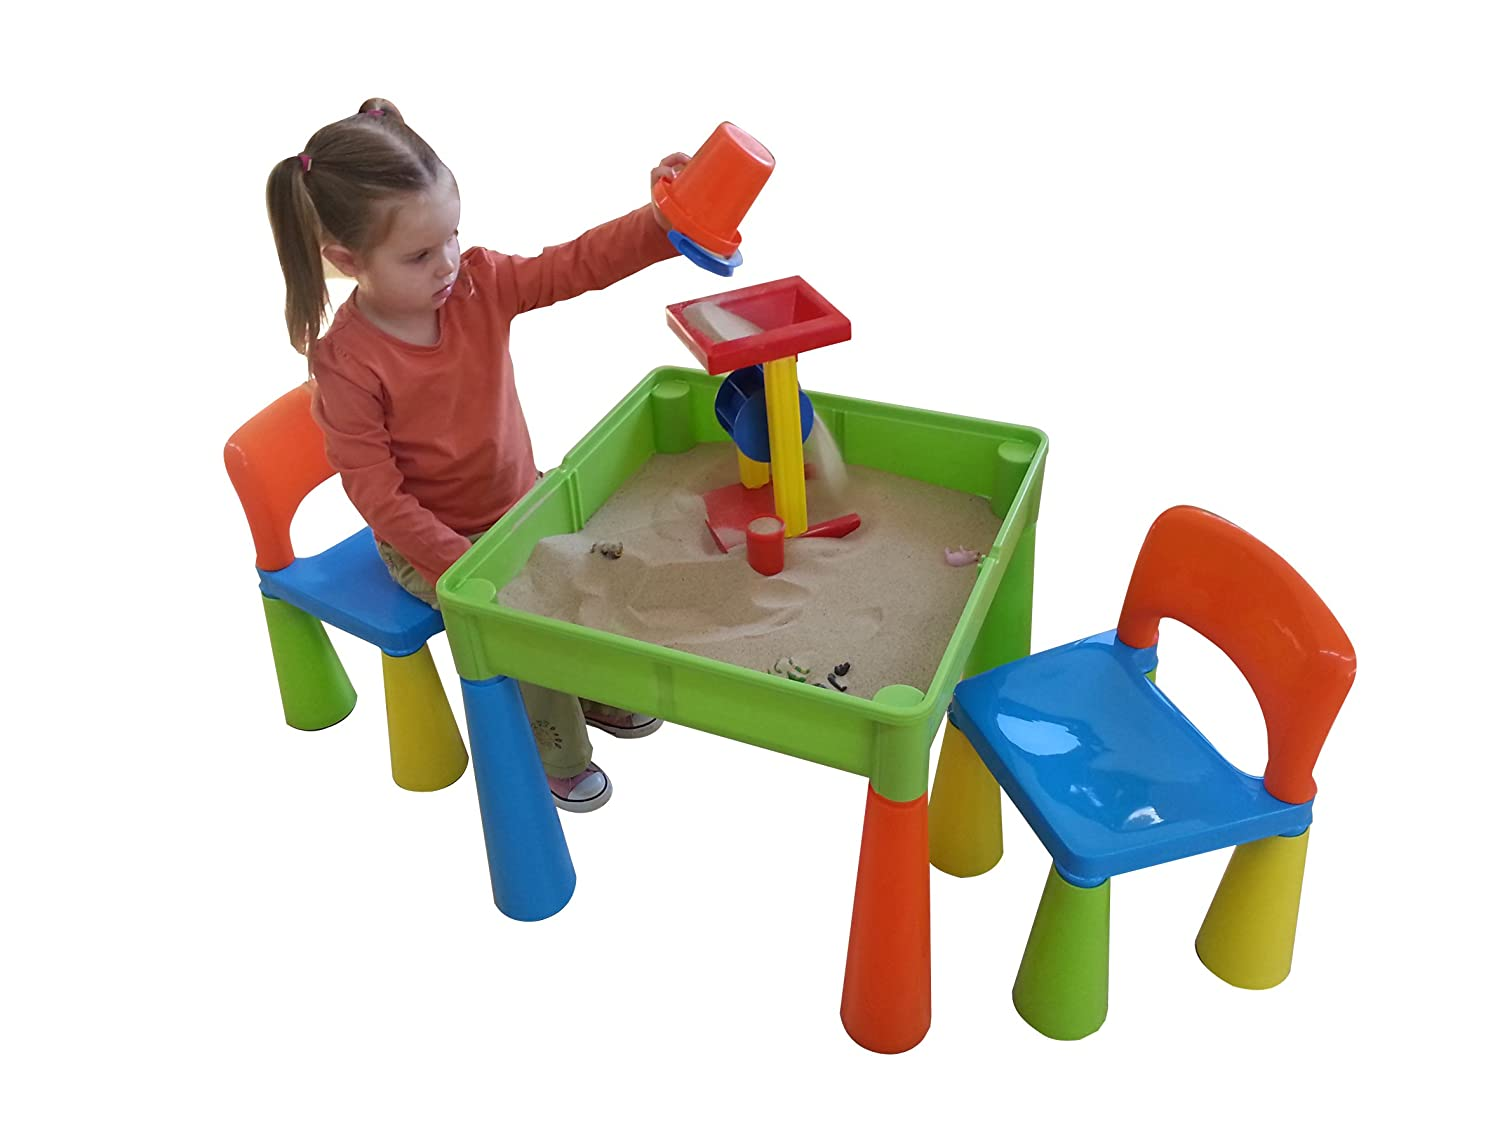 Liberty House Toys 5 In 1 Activity Table And Chairs With Writing  Top/Lego/Sand/Water/Storage: Amazon.co.uk: Kitchen U0026 Home